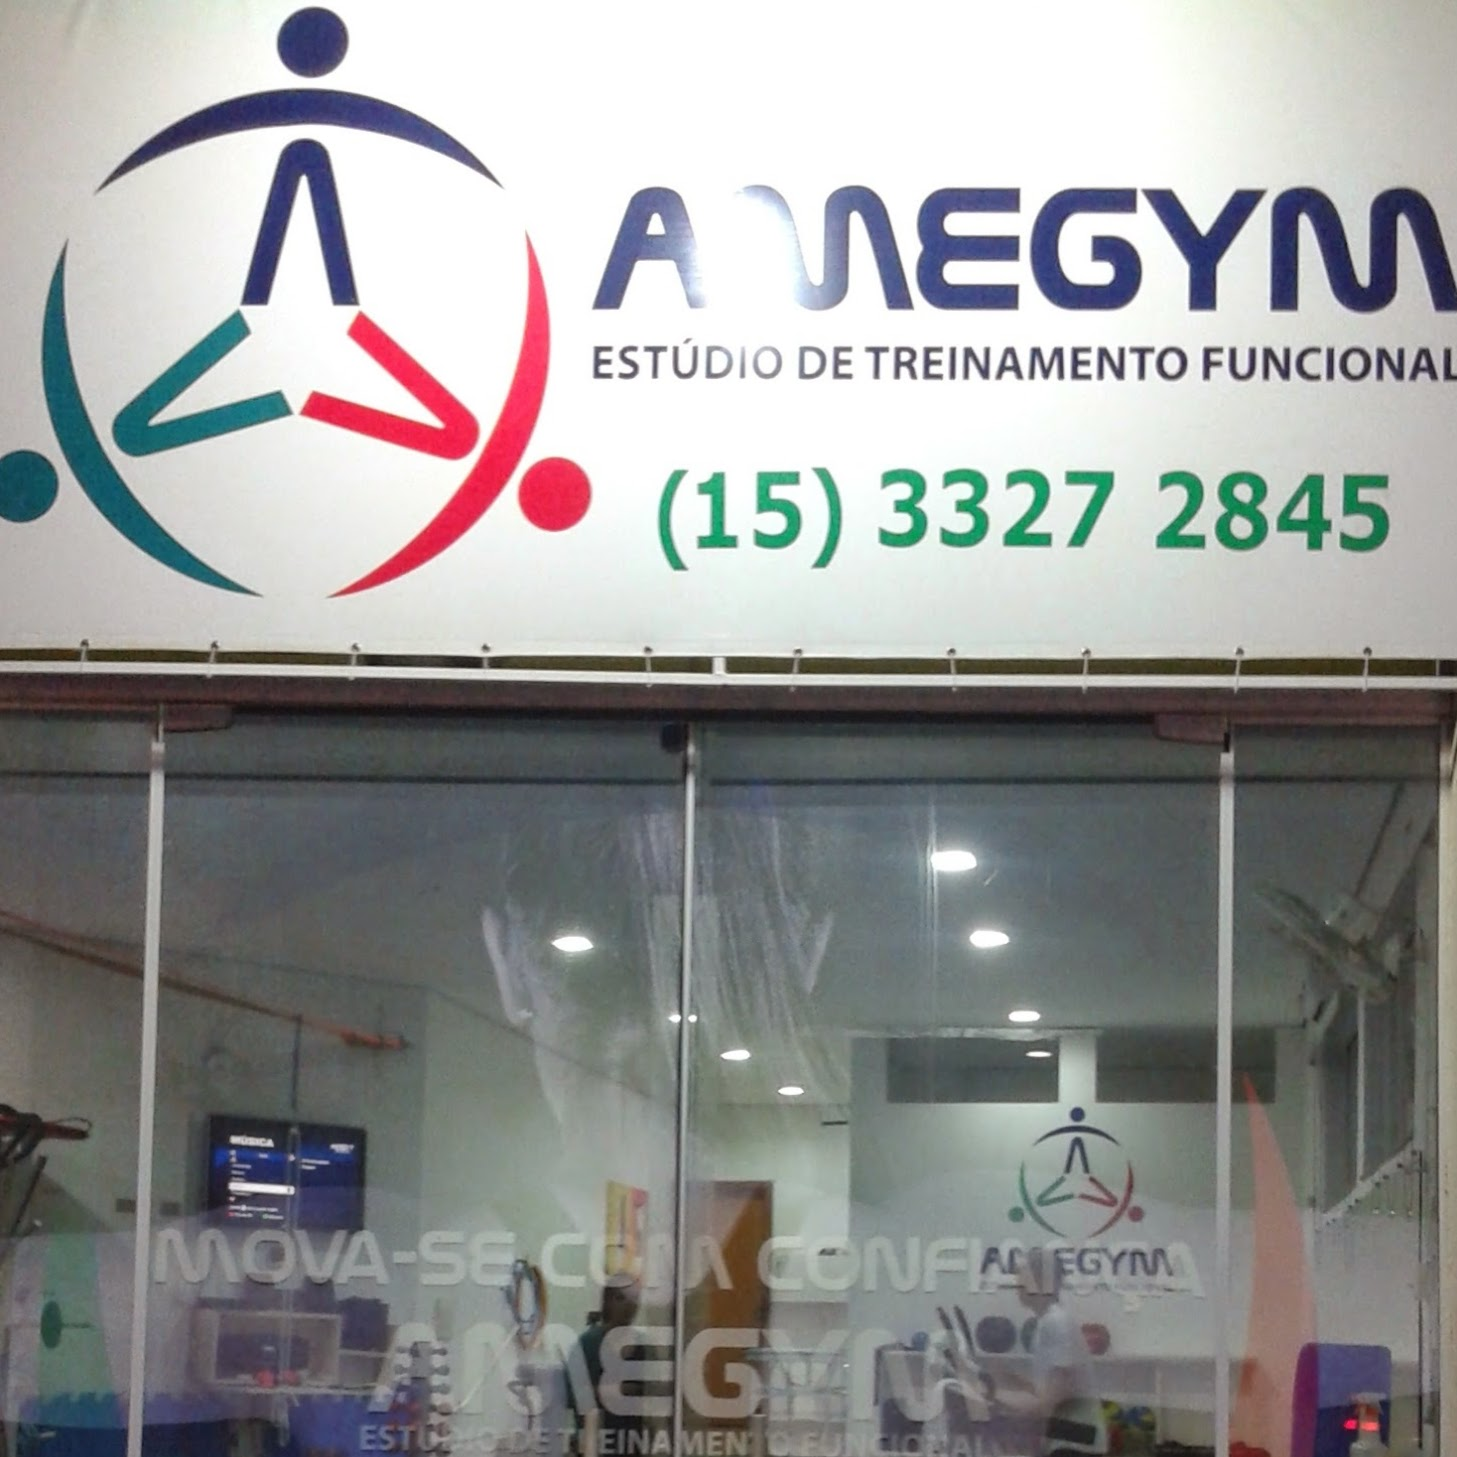 AMEGYM Treinamento Funcional - photo